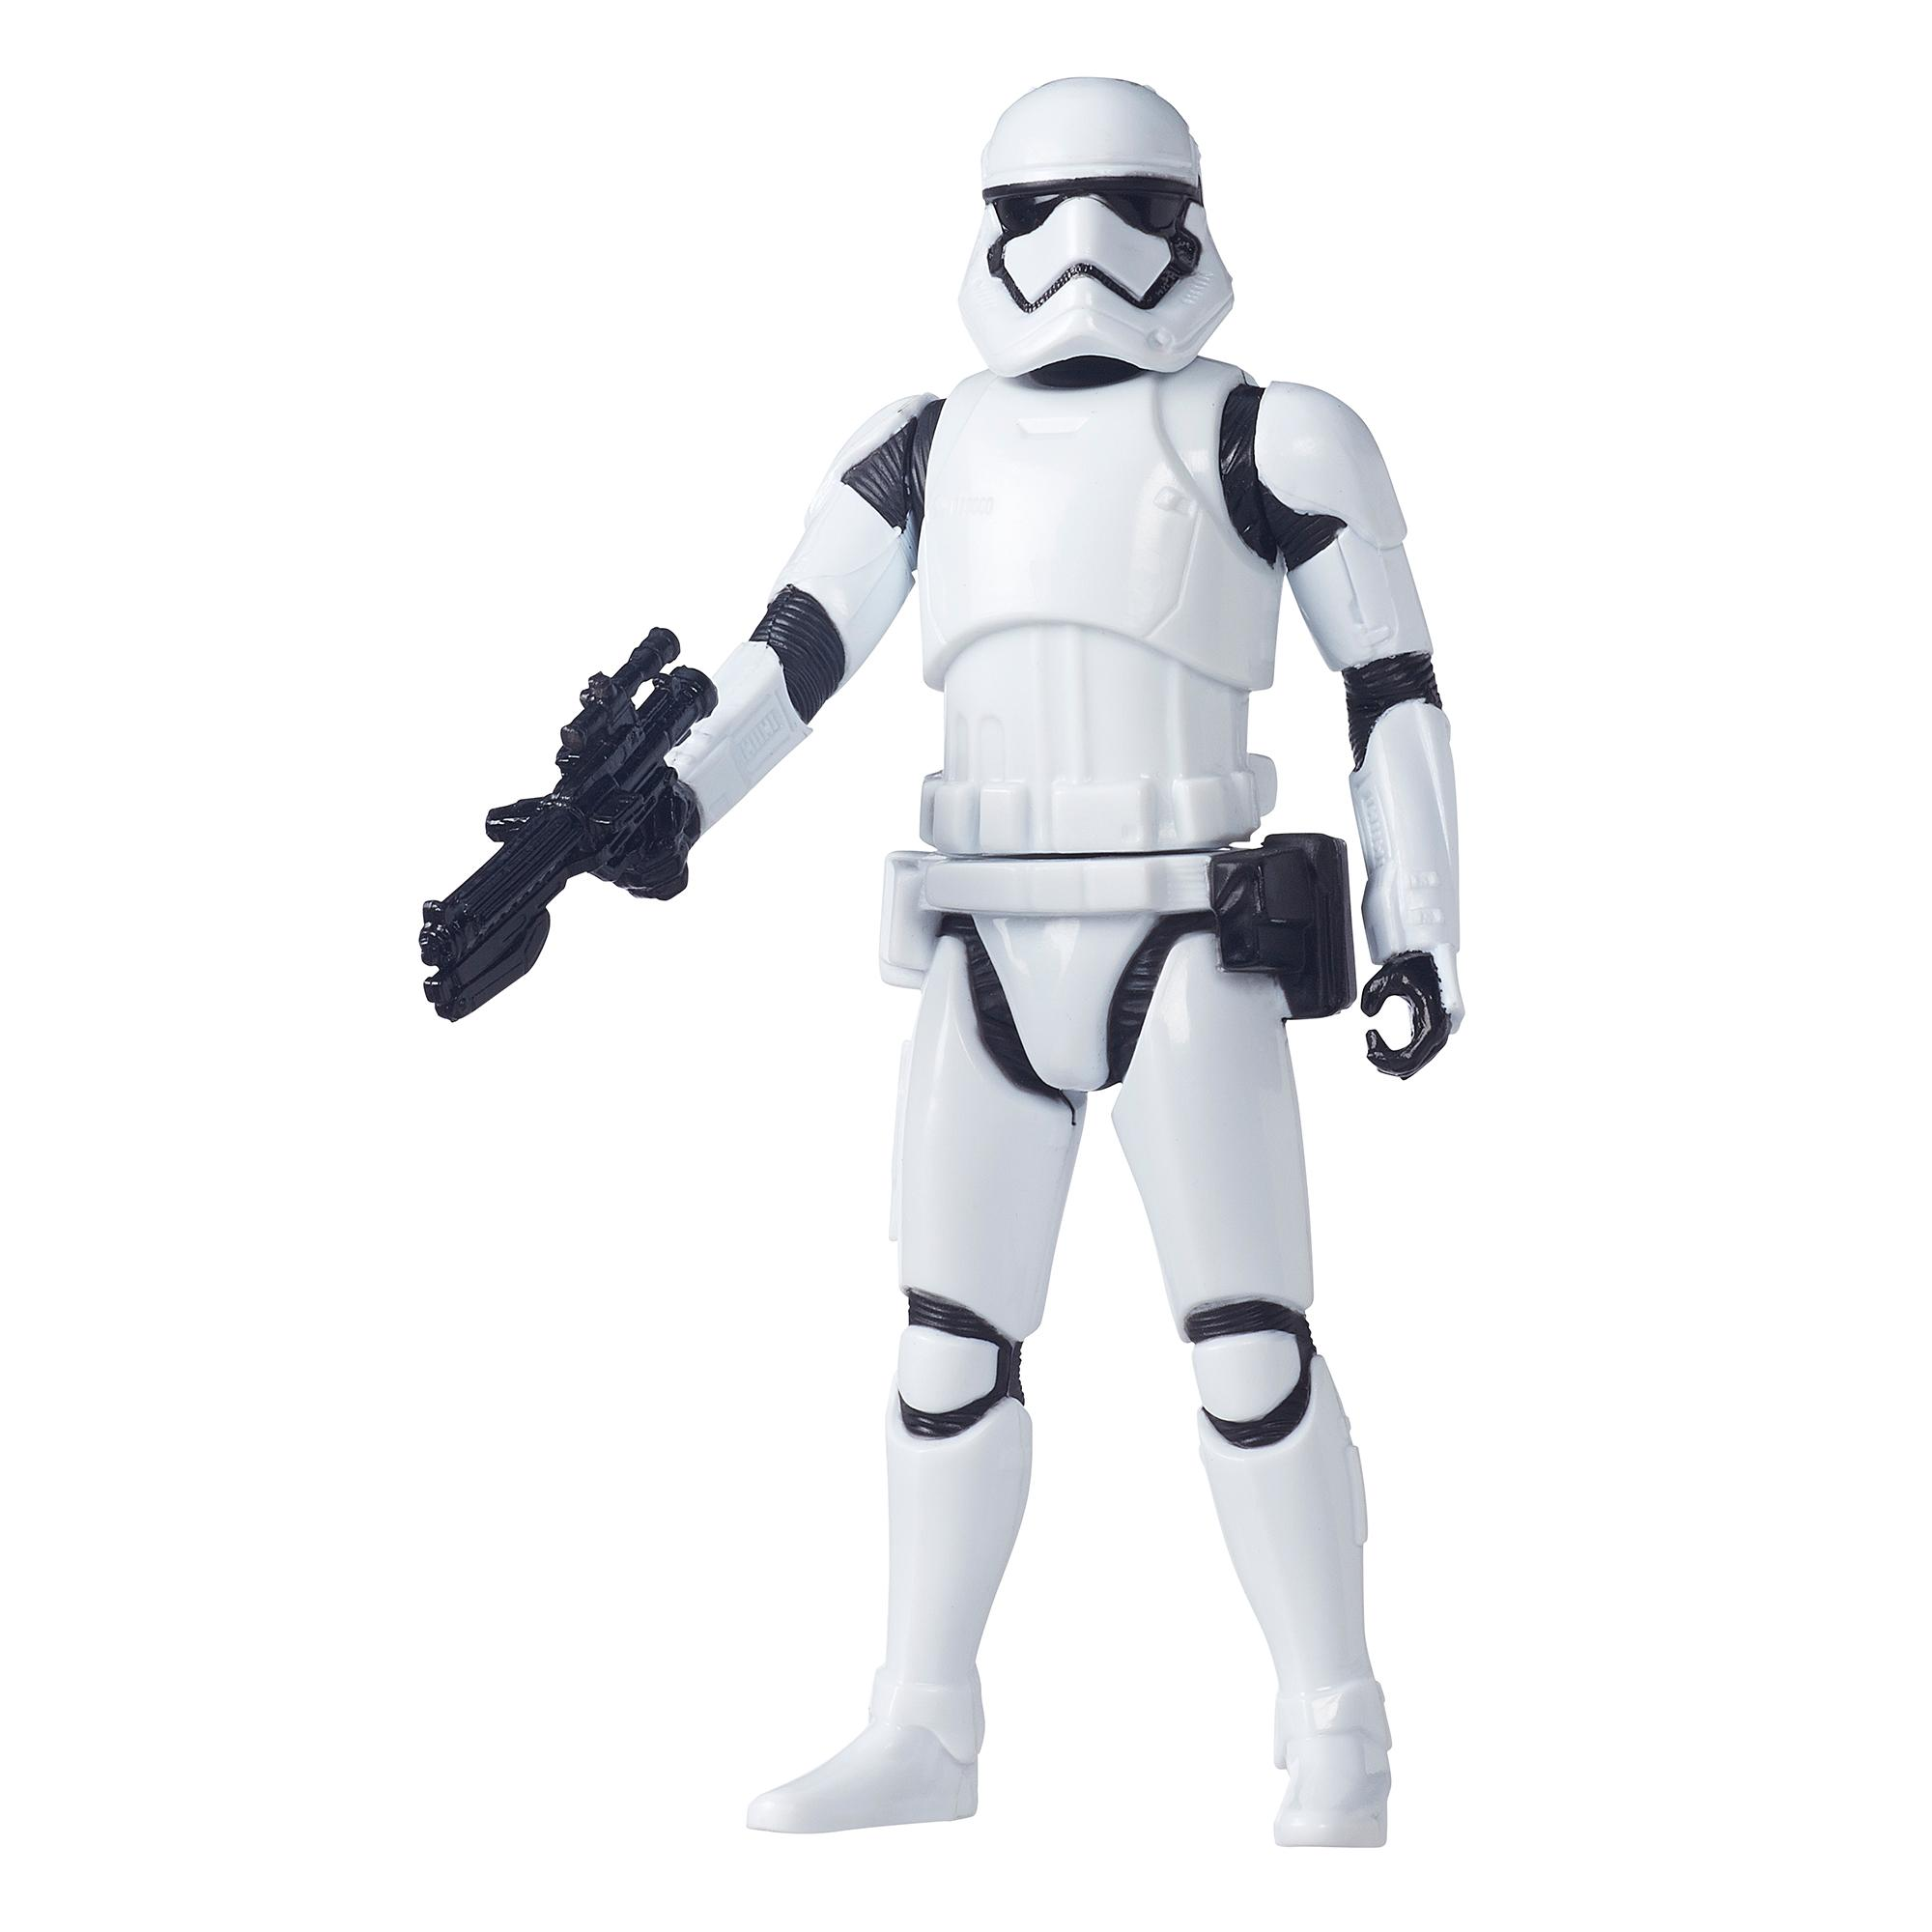 Star Wars The Force Awakens 6-Inch First Order Stormtrooper